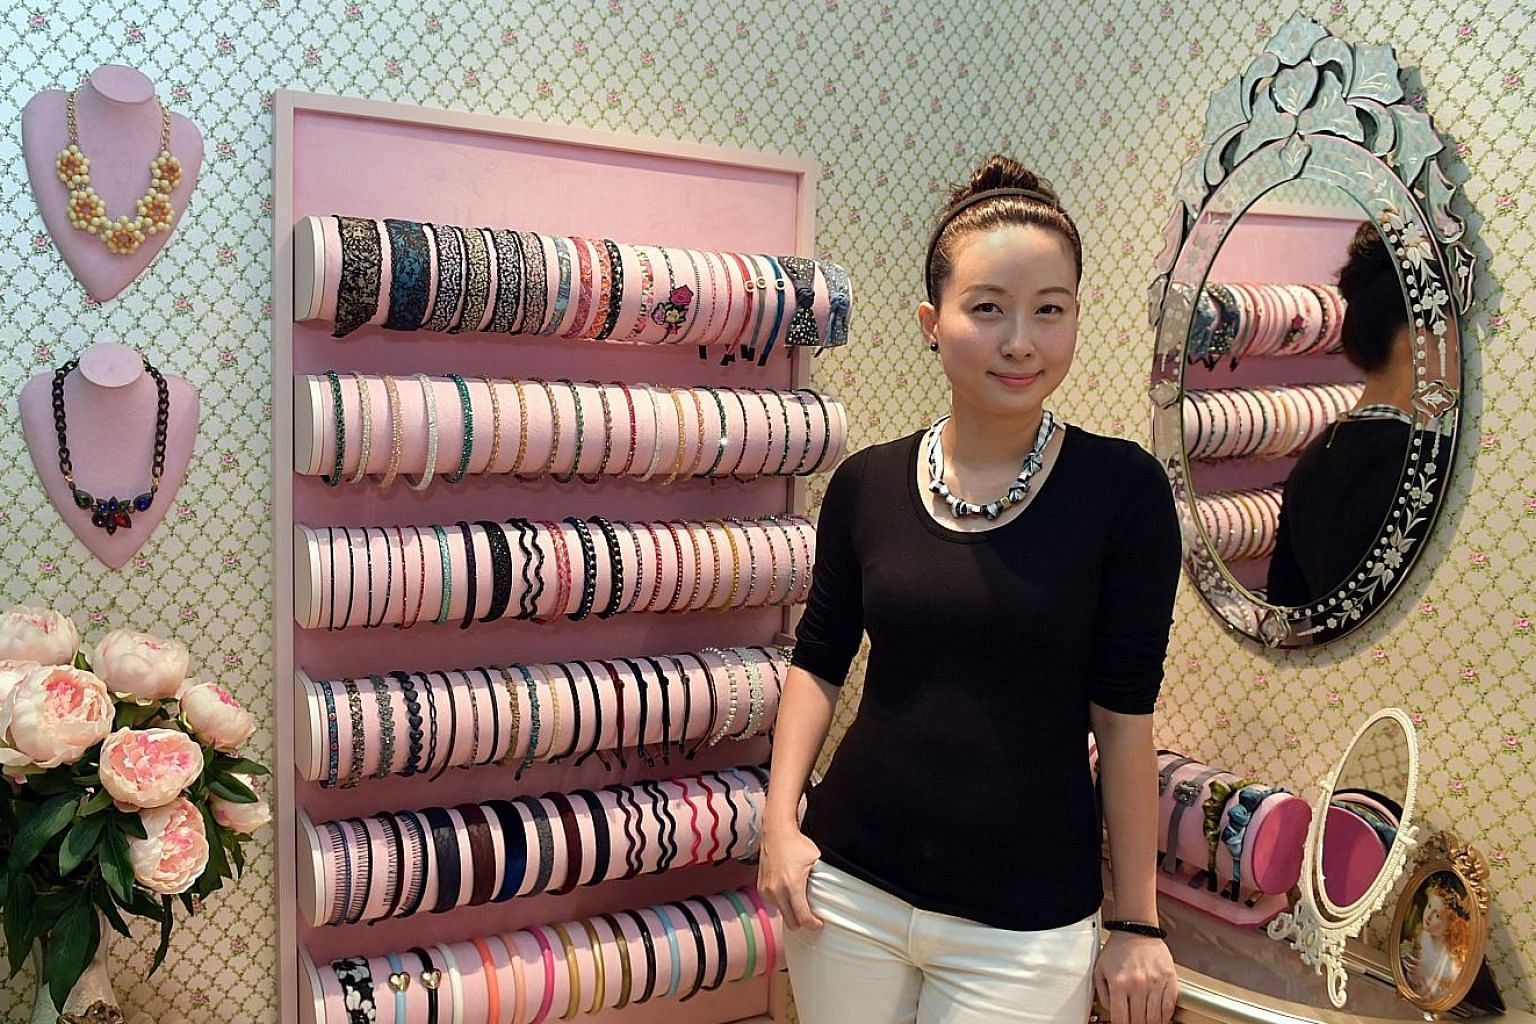 Pivoine founder Grace Lee posts photos of new accessories ahead of their launch to drum up interest among her small but loyal following. On a good day, she can sell 40 to 50 pieces of accessories.